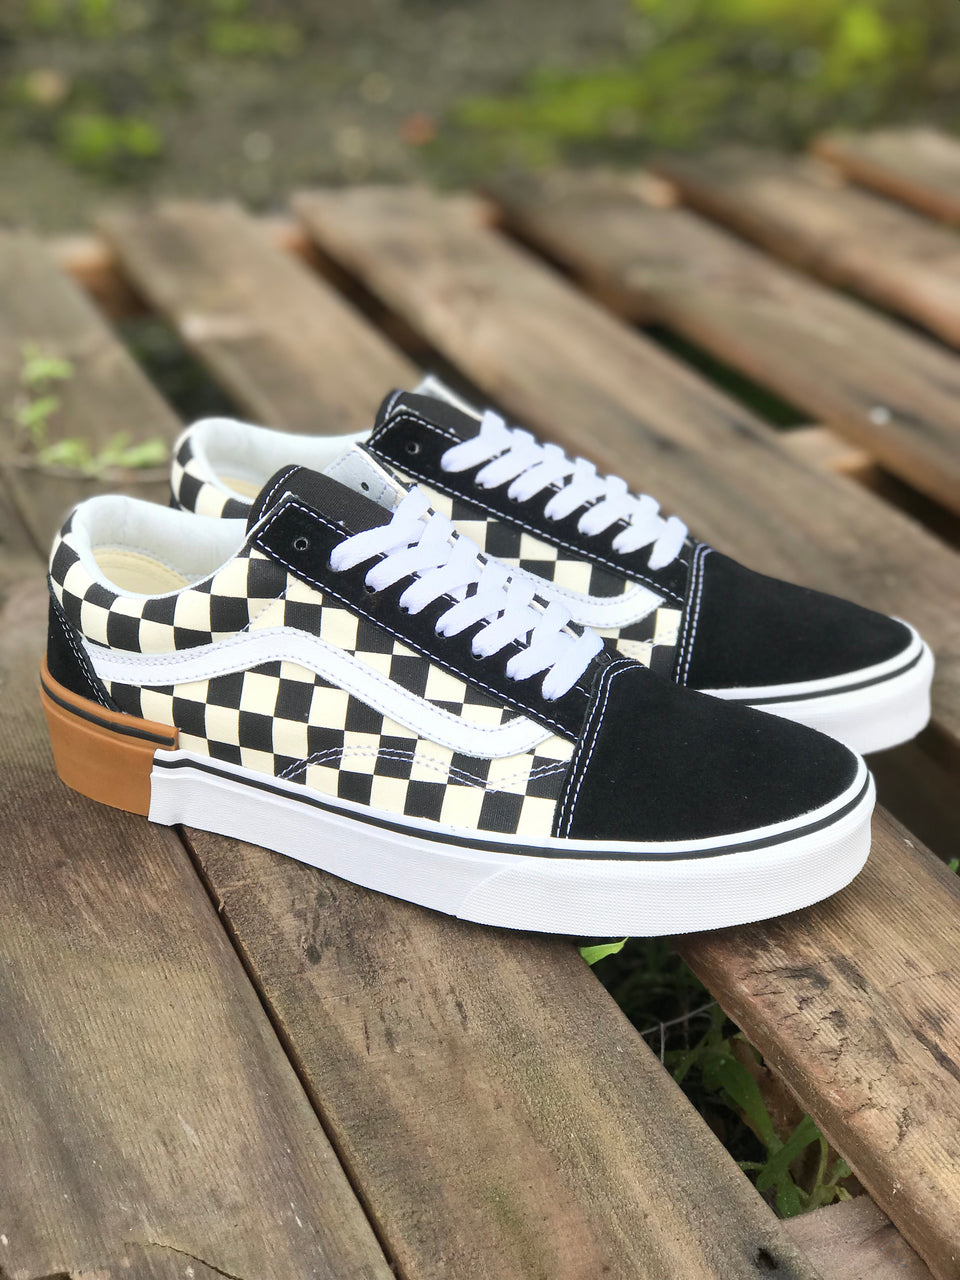 Vans Old Skool (Gum Block) Checkerboard